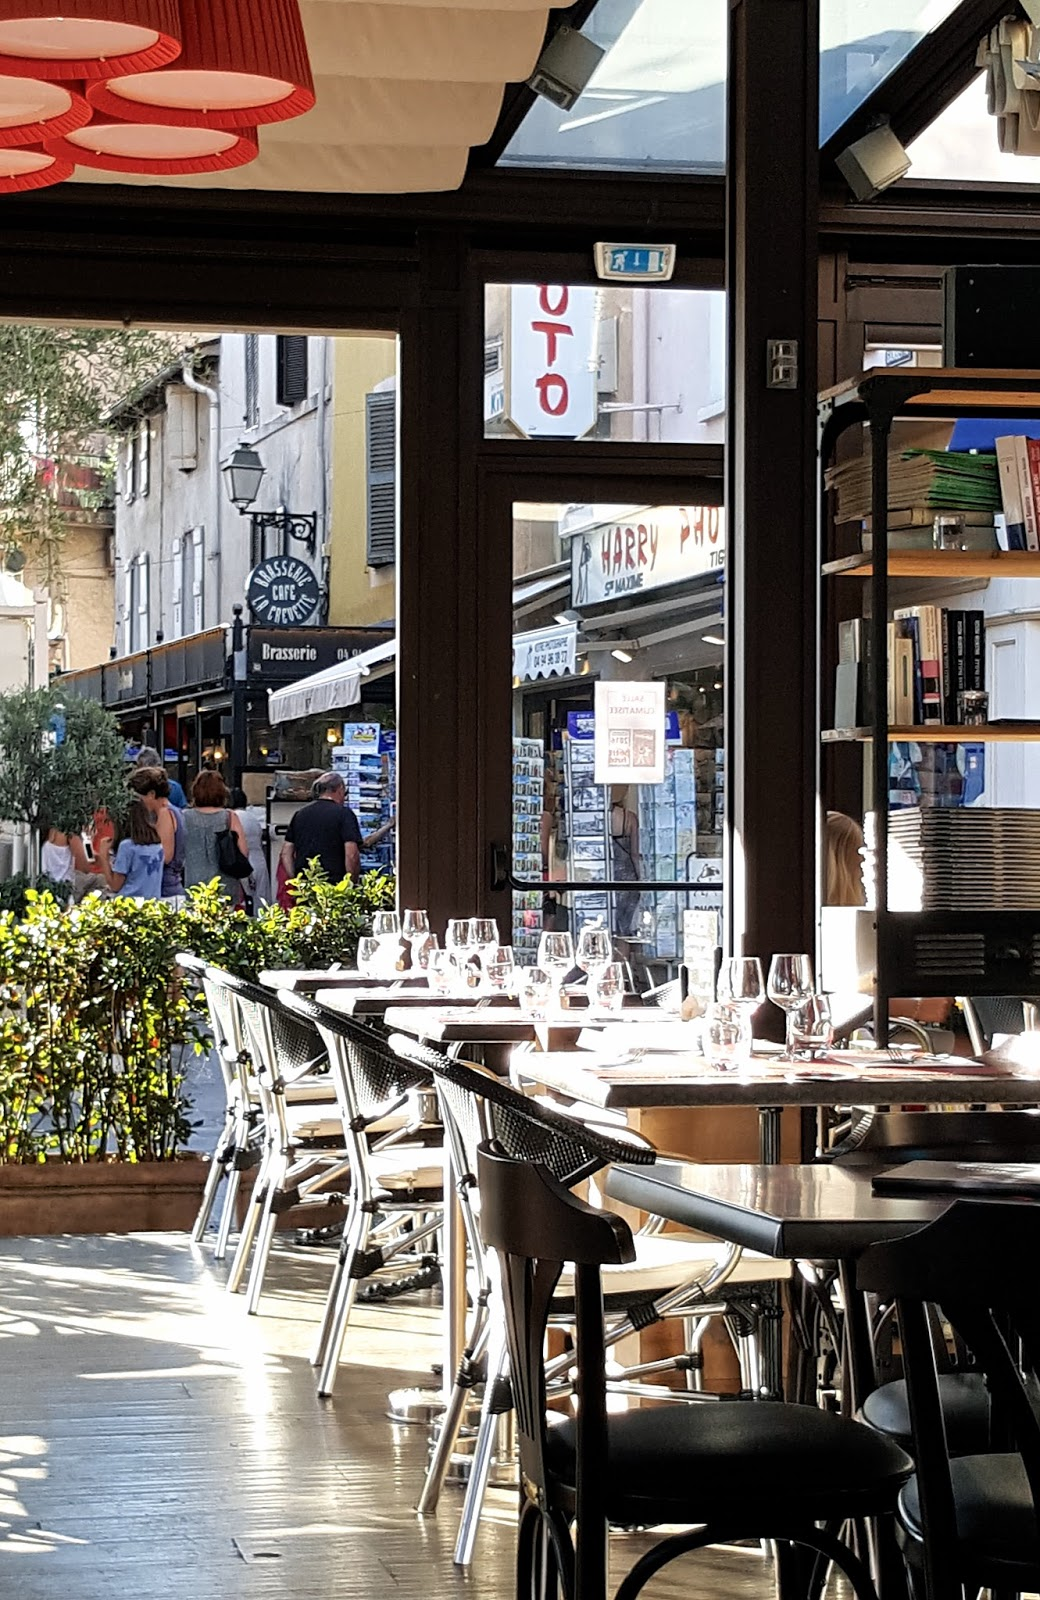 Le Café de France Sainte-Maxime restaurant review